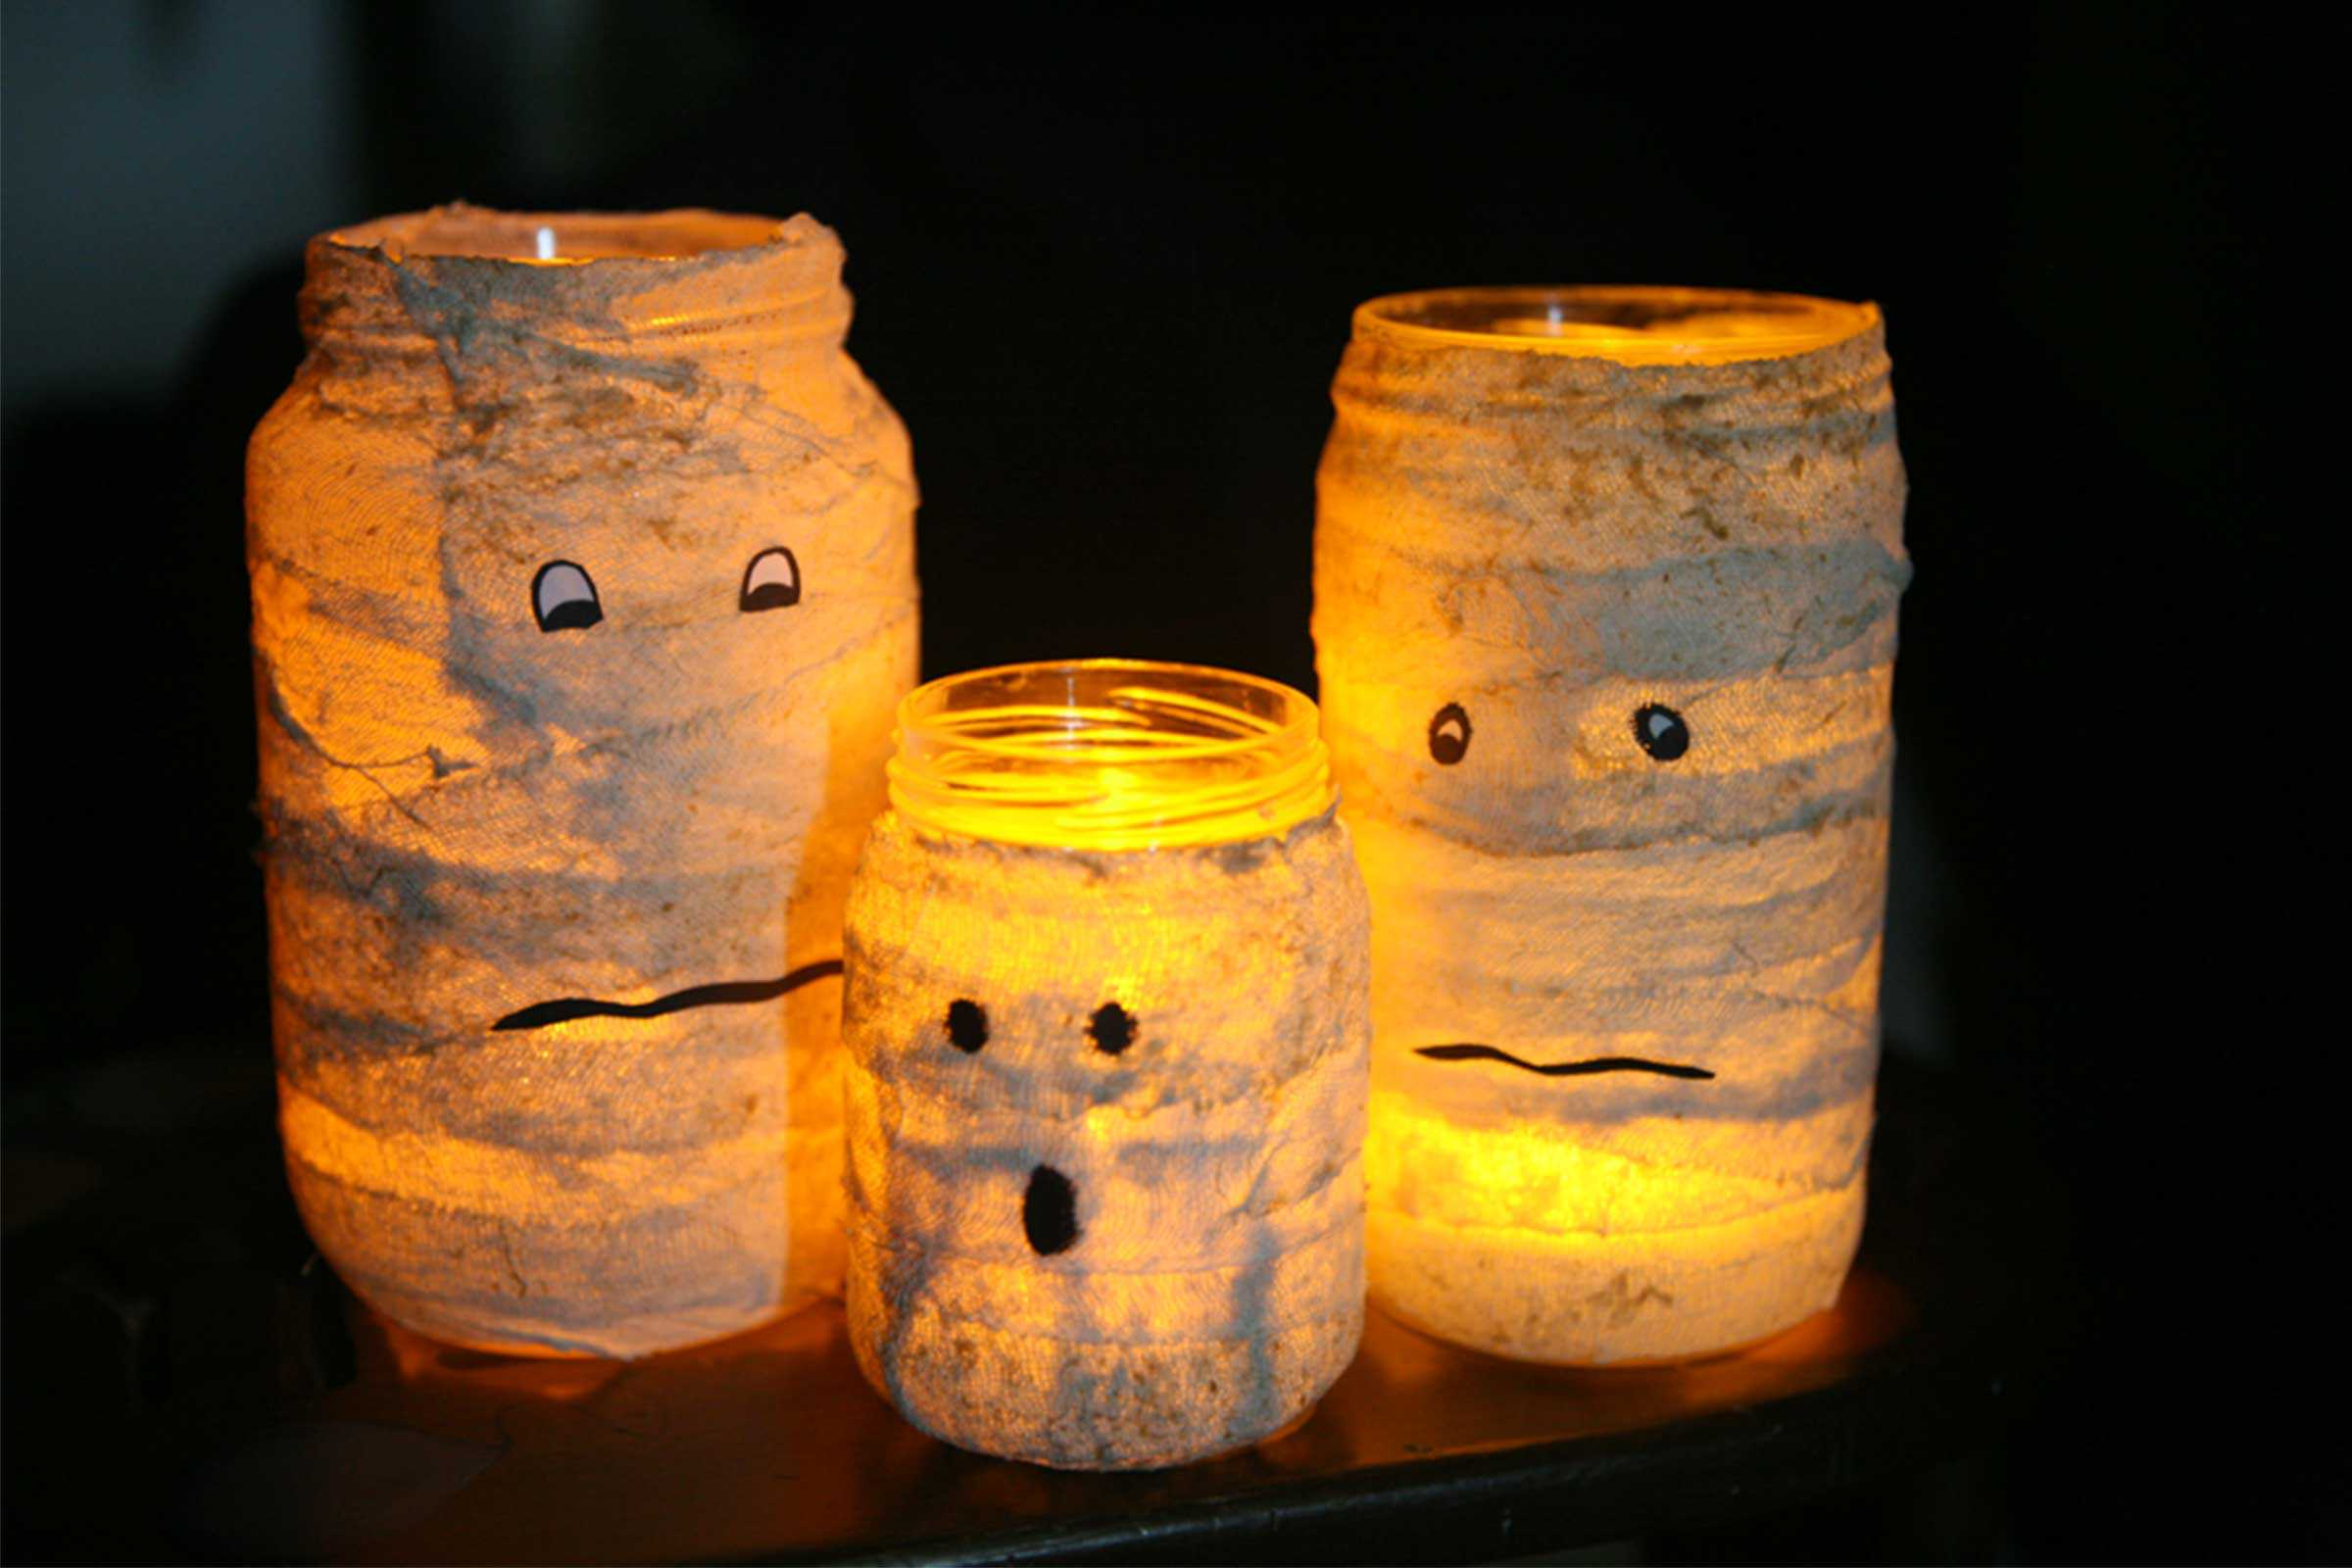 Easy mummy candle jars